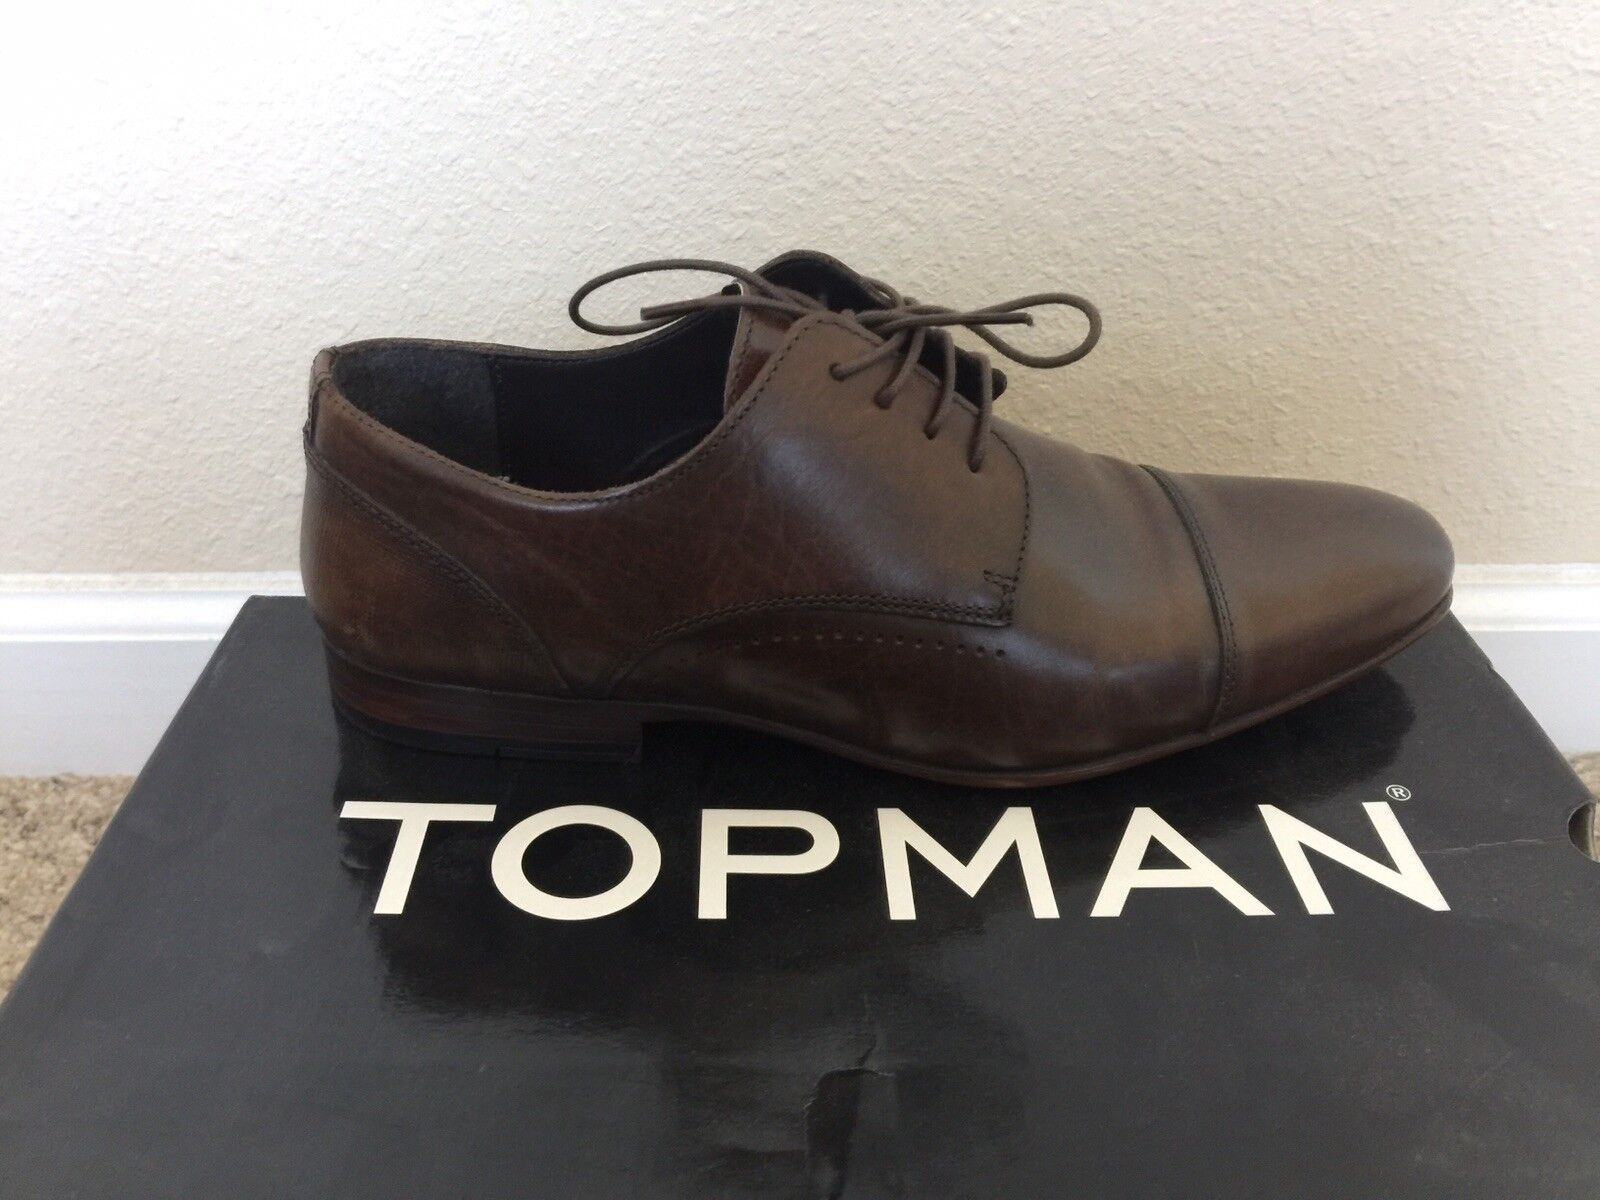 Topman Mens Leather Dress Size Shoes Size Dress 9 982dab